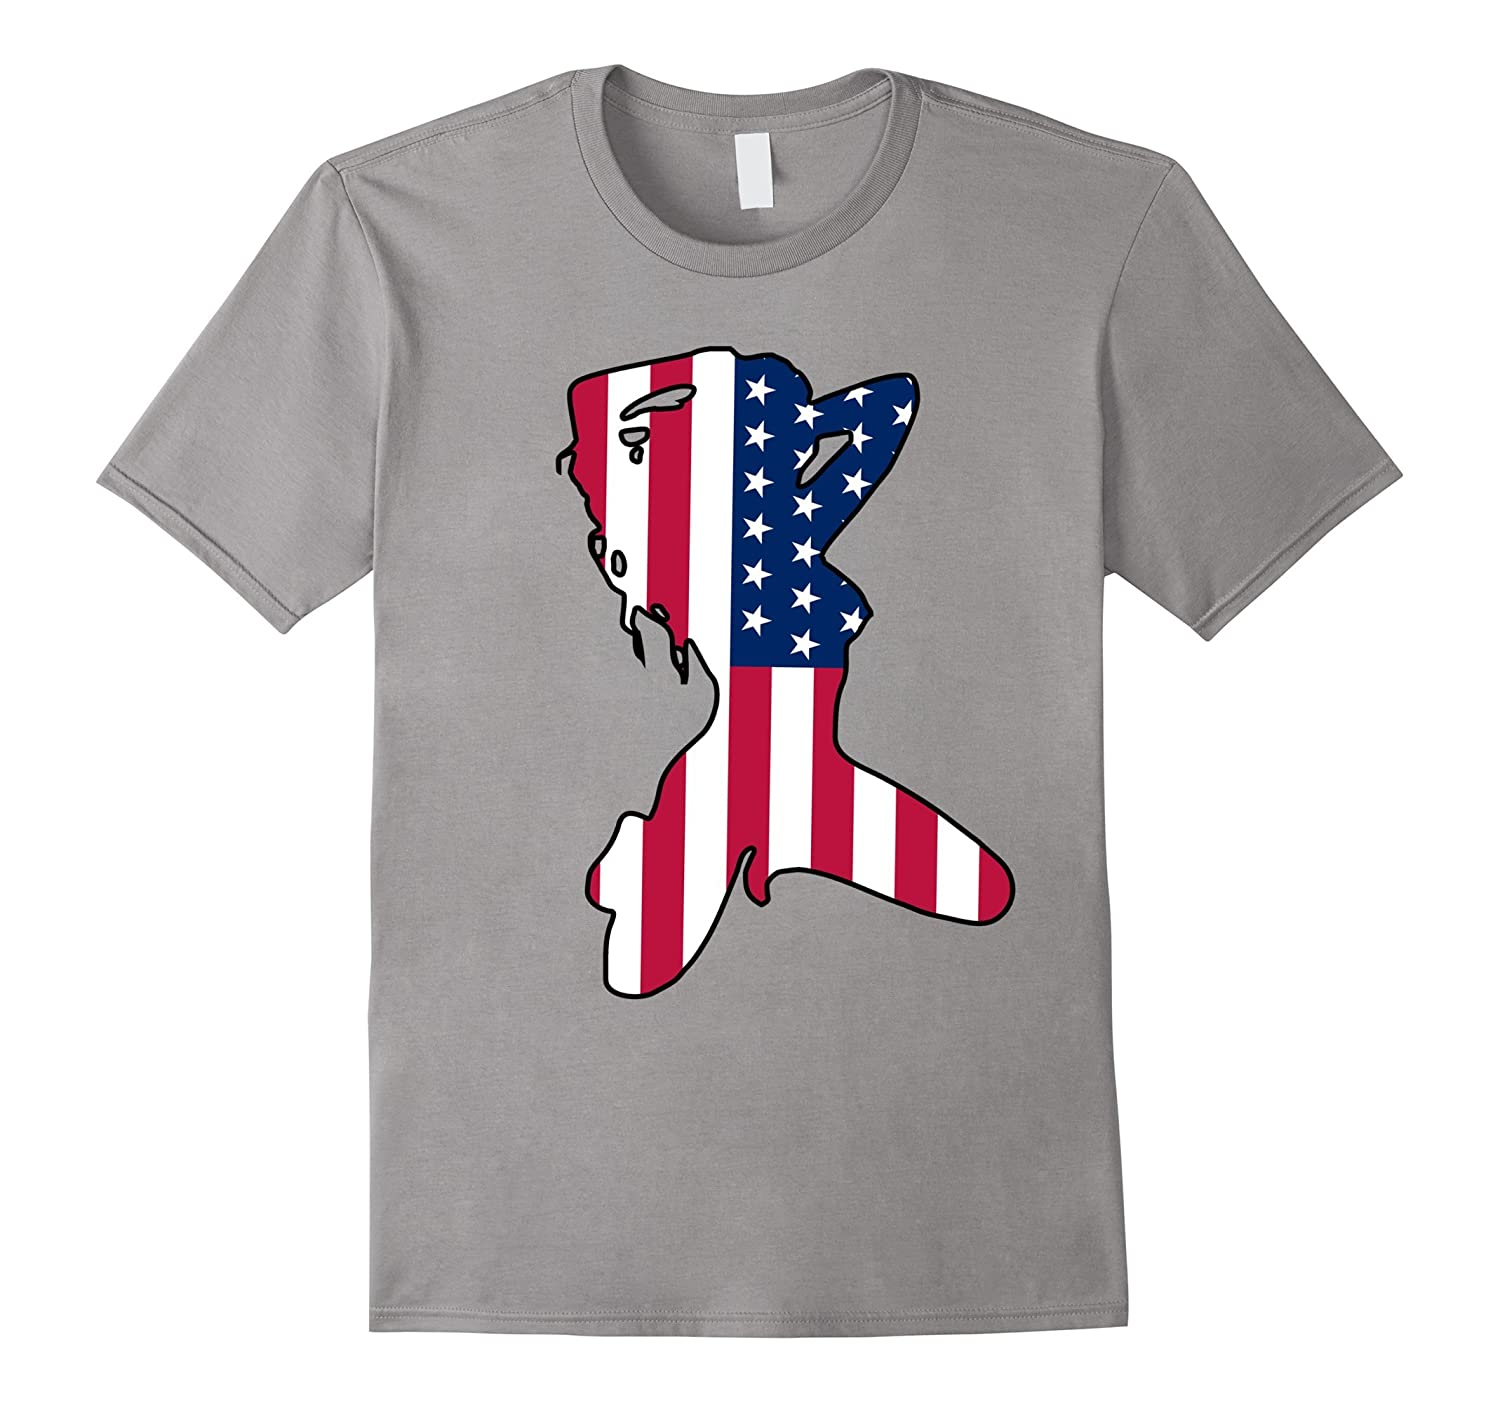 Women Body American Flag T-Shirt - Stripper Flag T Shirt-TD